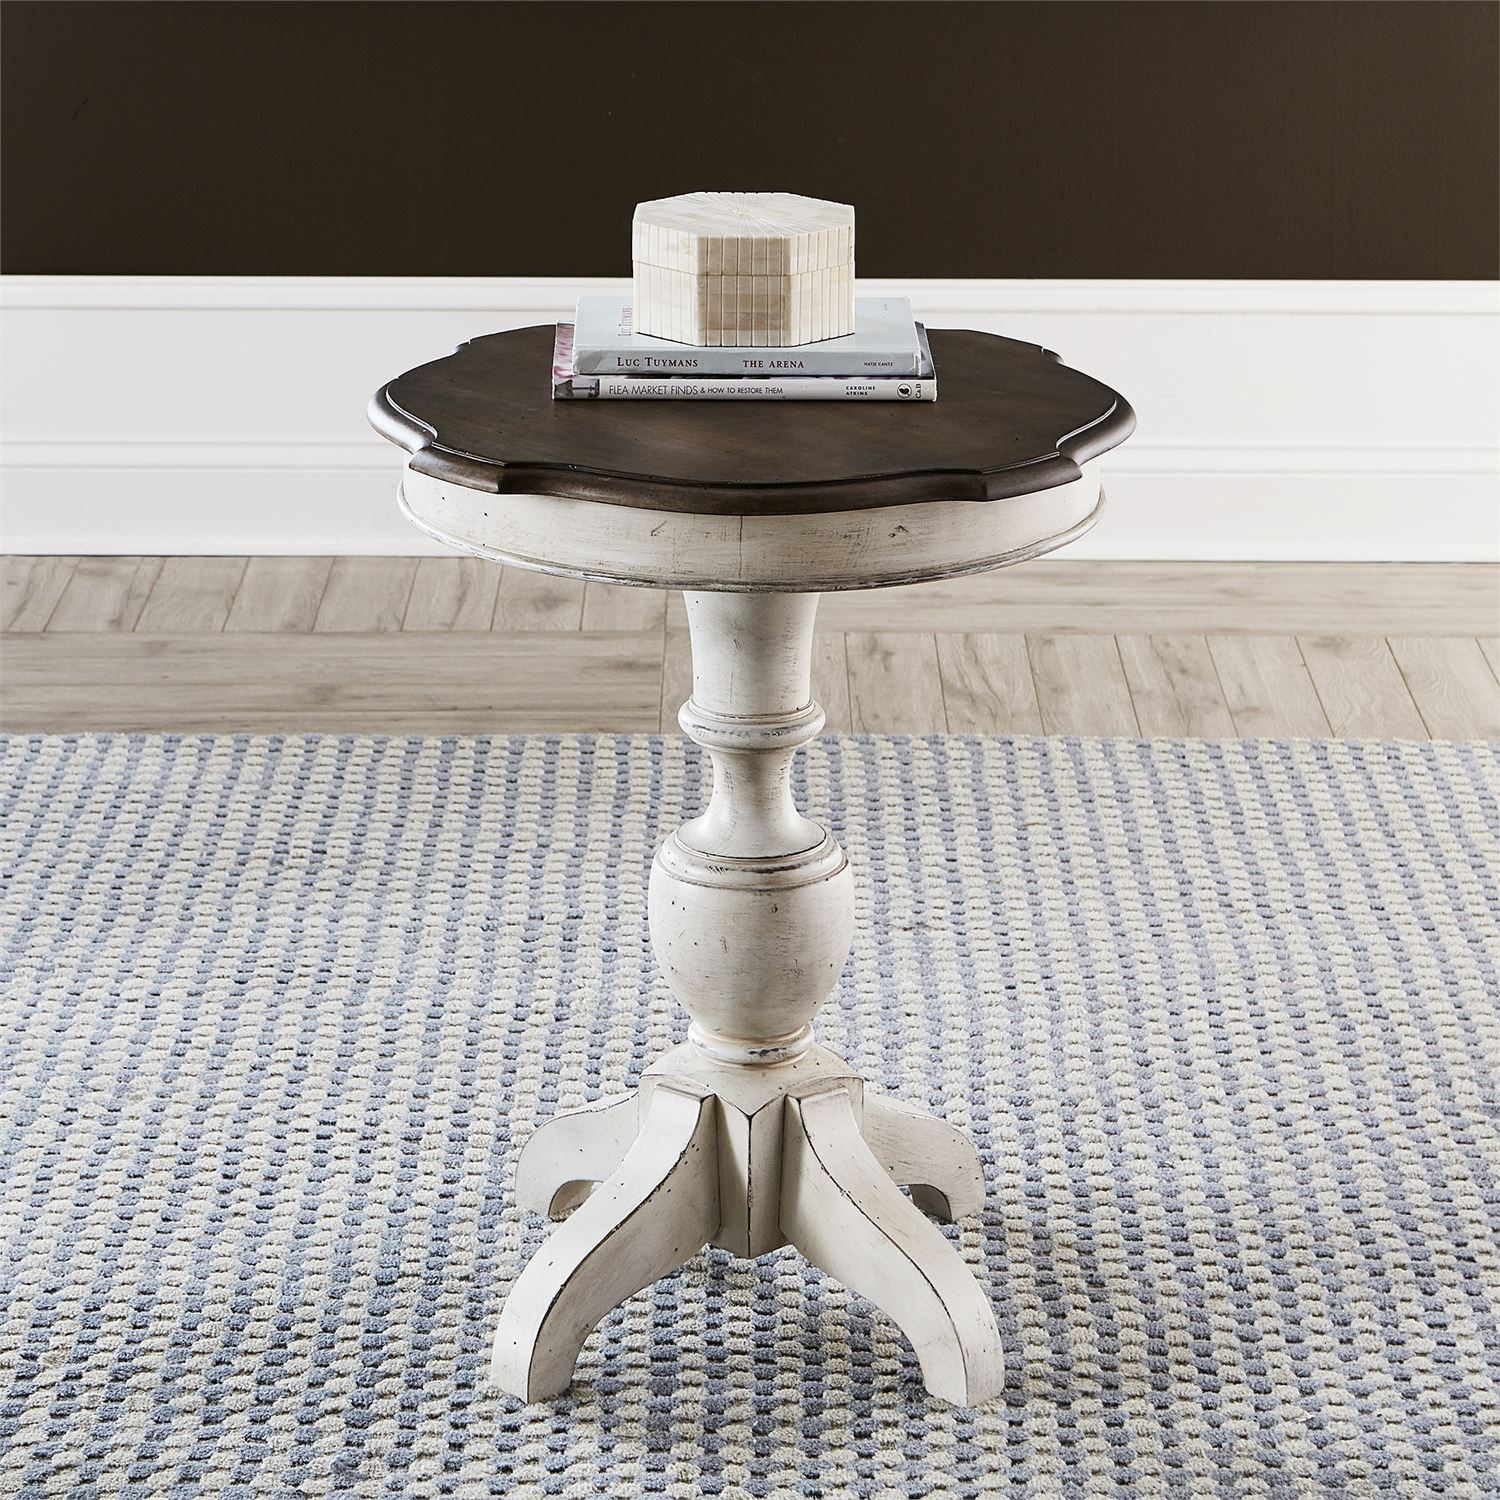 Abbey Road Round End Table by Liberty Furniture at Esprit Decor Home Furnishings